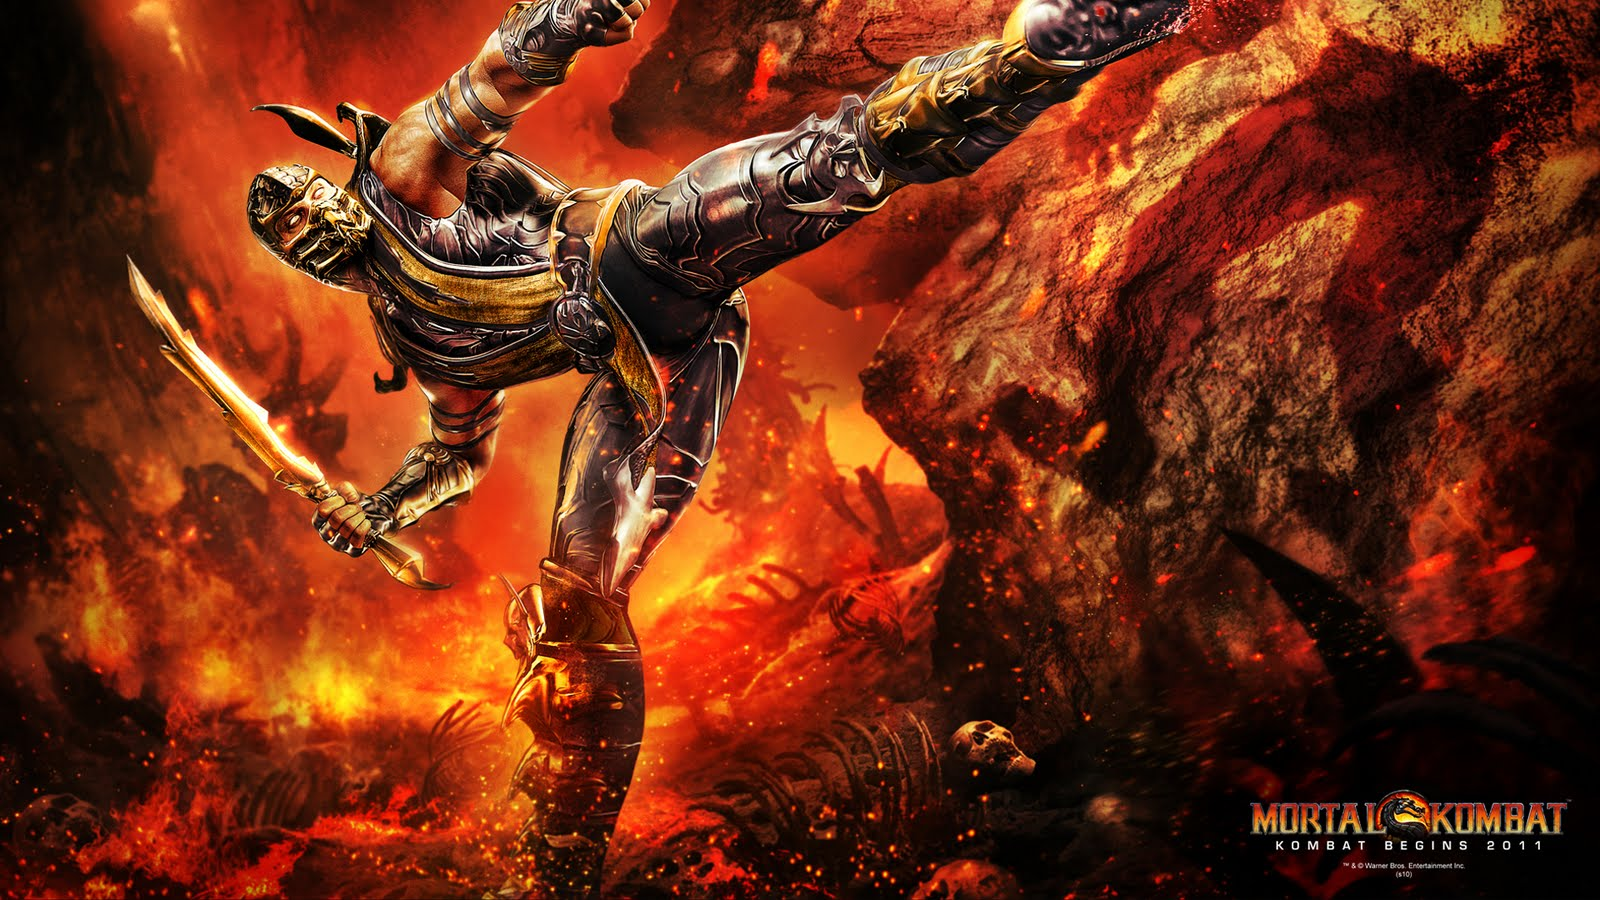 Mortal kombat HD & Widescreen Wallpaper 0.35591296036169